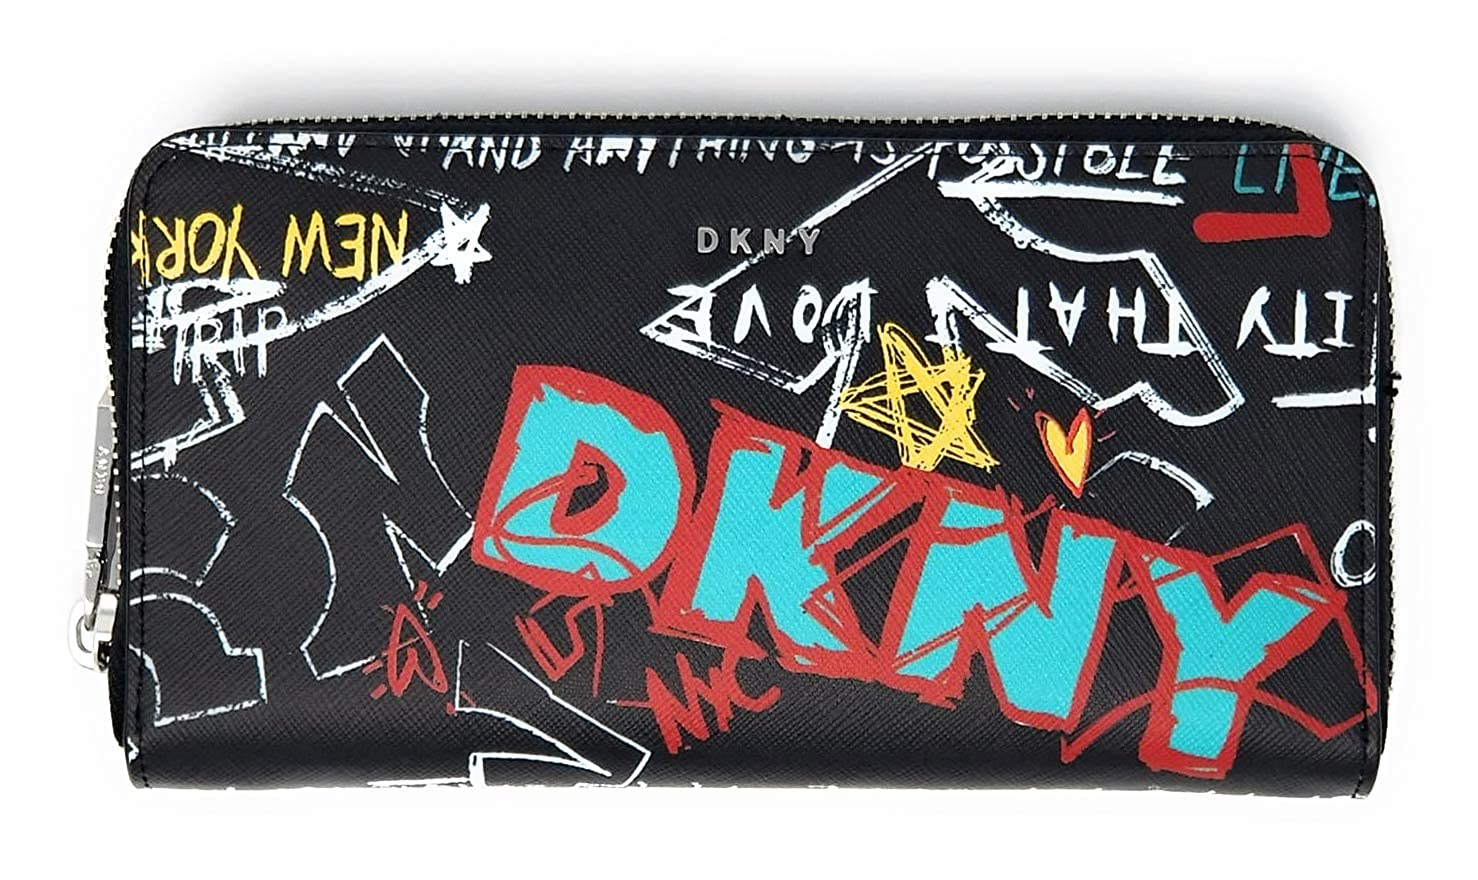 Dkny womens graffiti saffiano leather zip around continental wallet black amazon co uk clothing